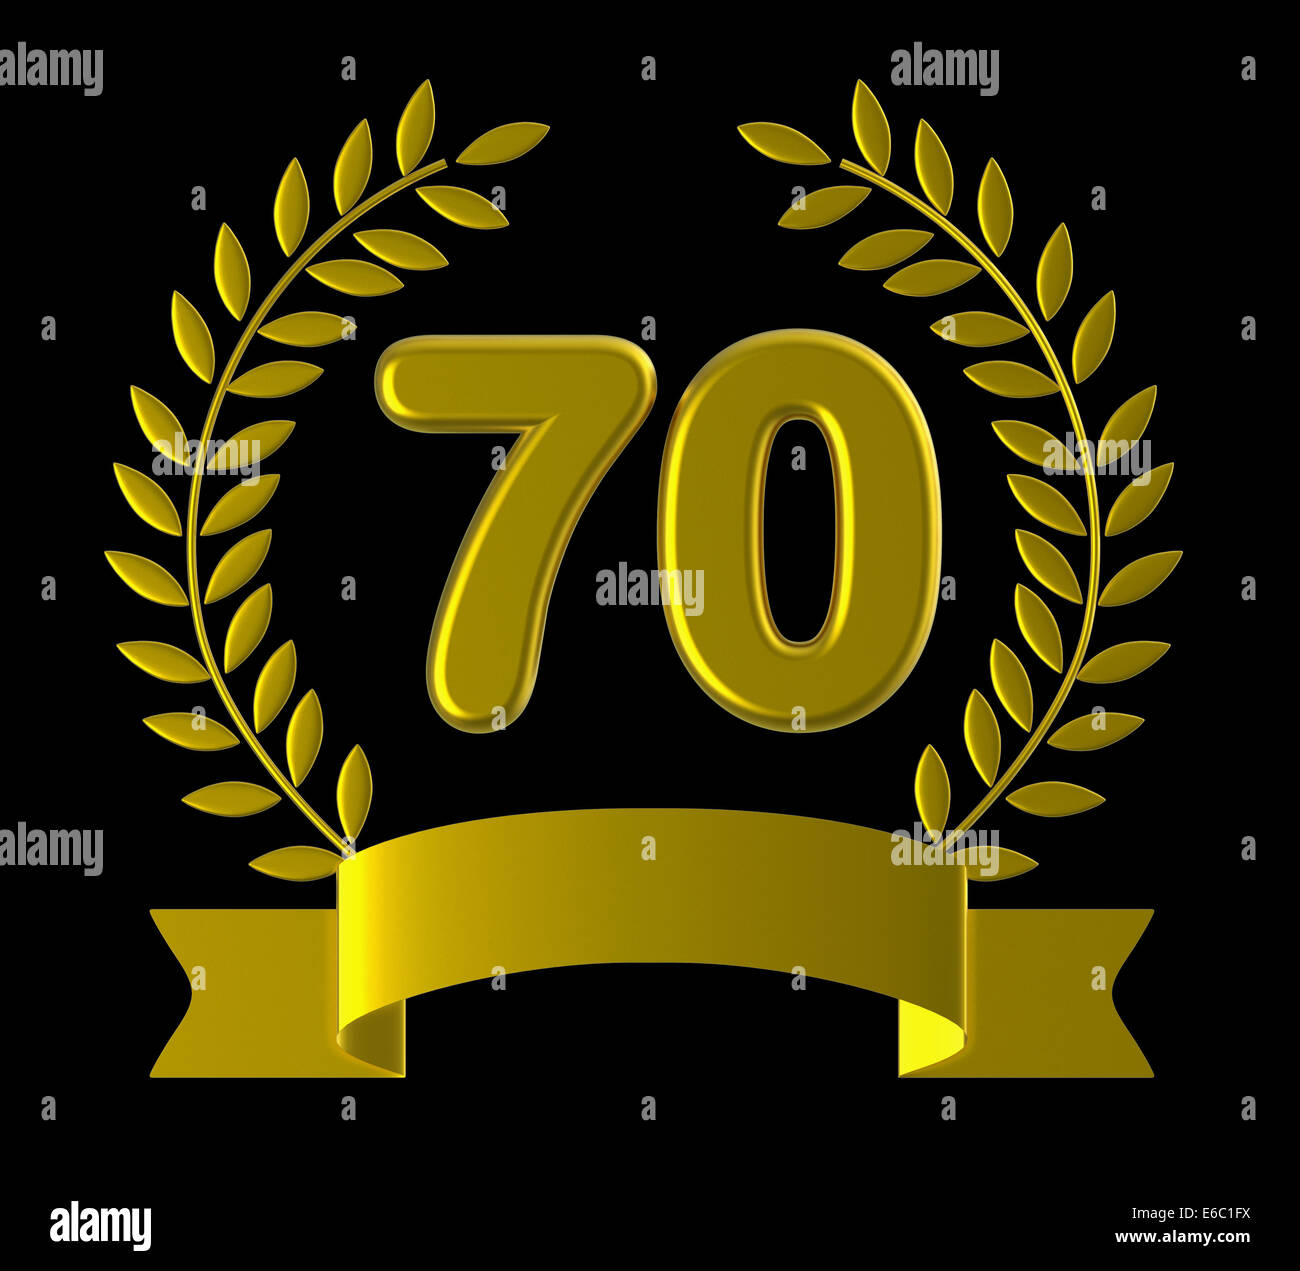 Anniversary birthday meaning happy annual and celebrate stock anniversary birthday meaning happy annual and celebrate buycottarizona